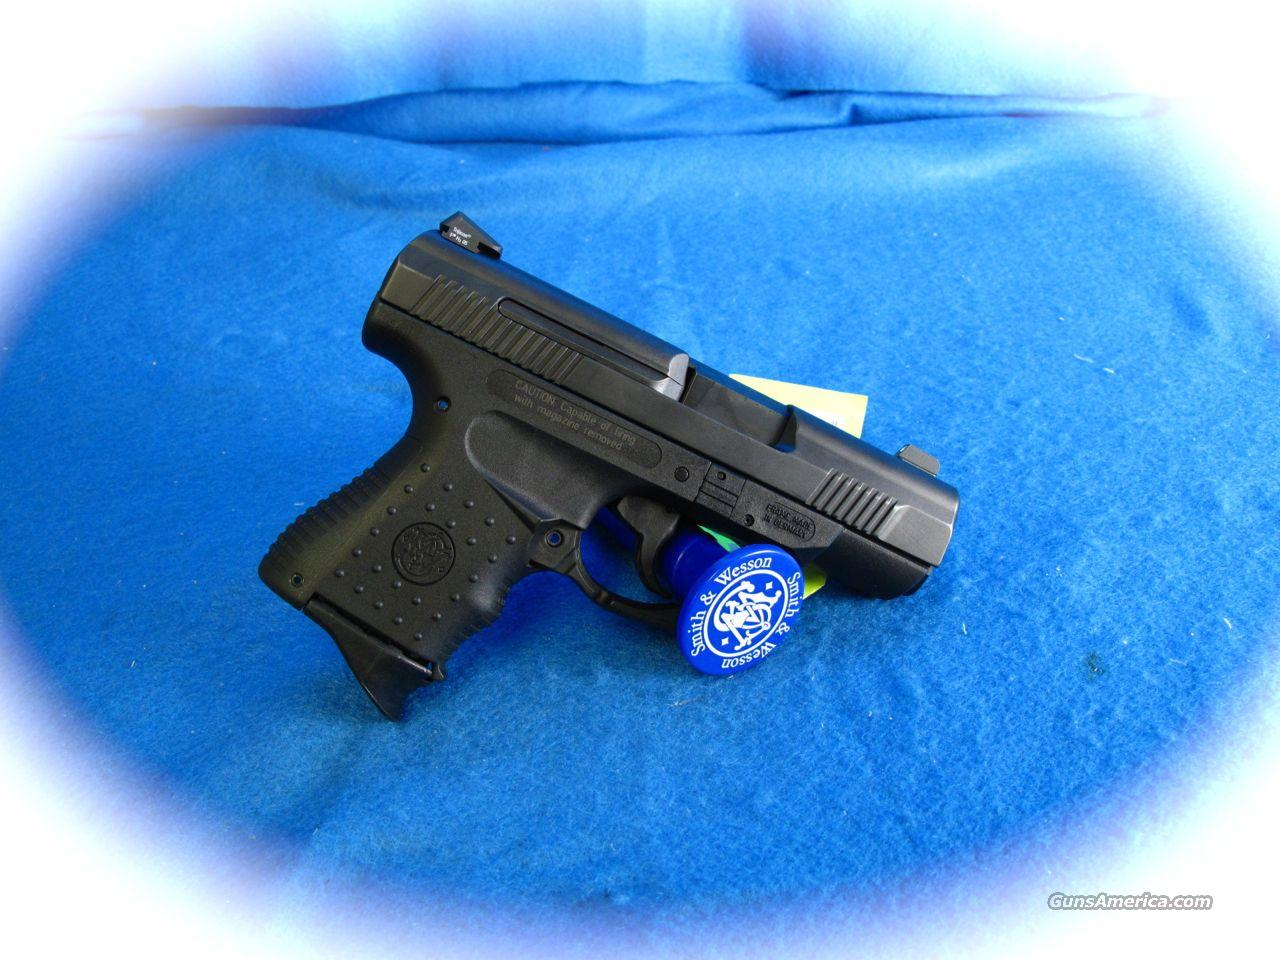 Smith & Wesson 990L 40 S&W Sub Compact **NEW**  Guns > Pistols > Smith & Wesson Pistols - Autos > Polymer Frame